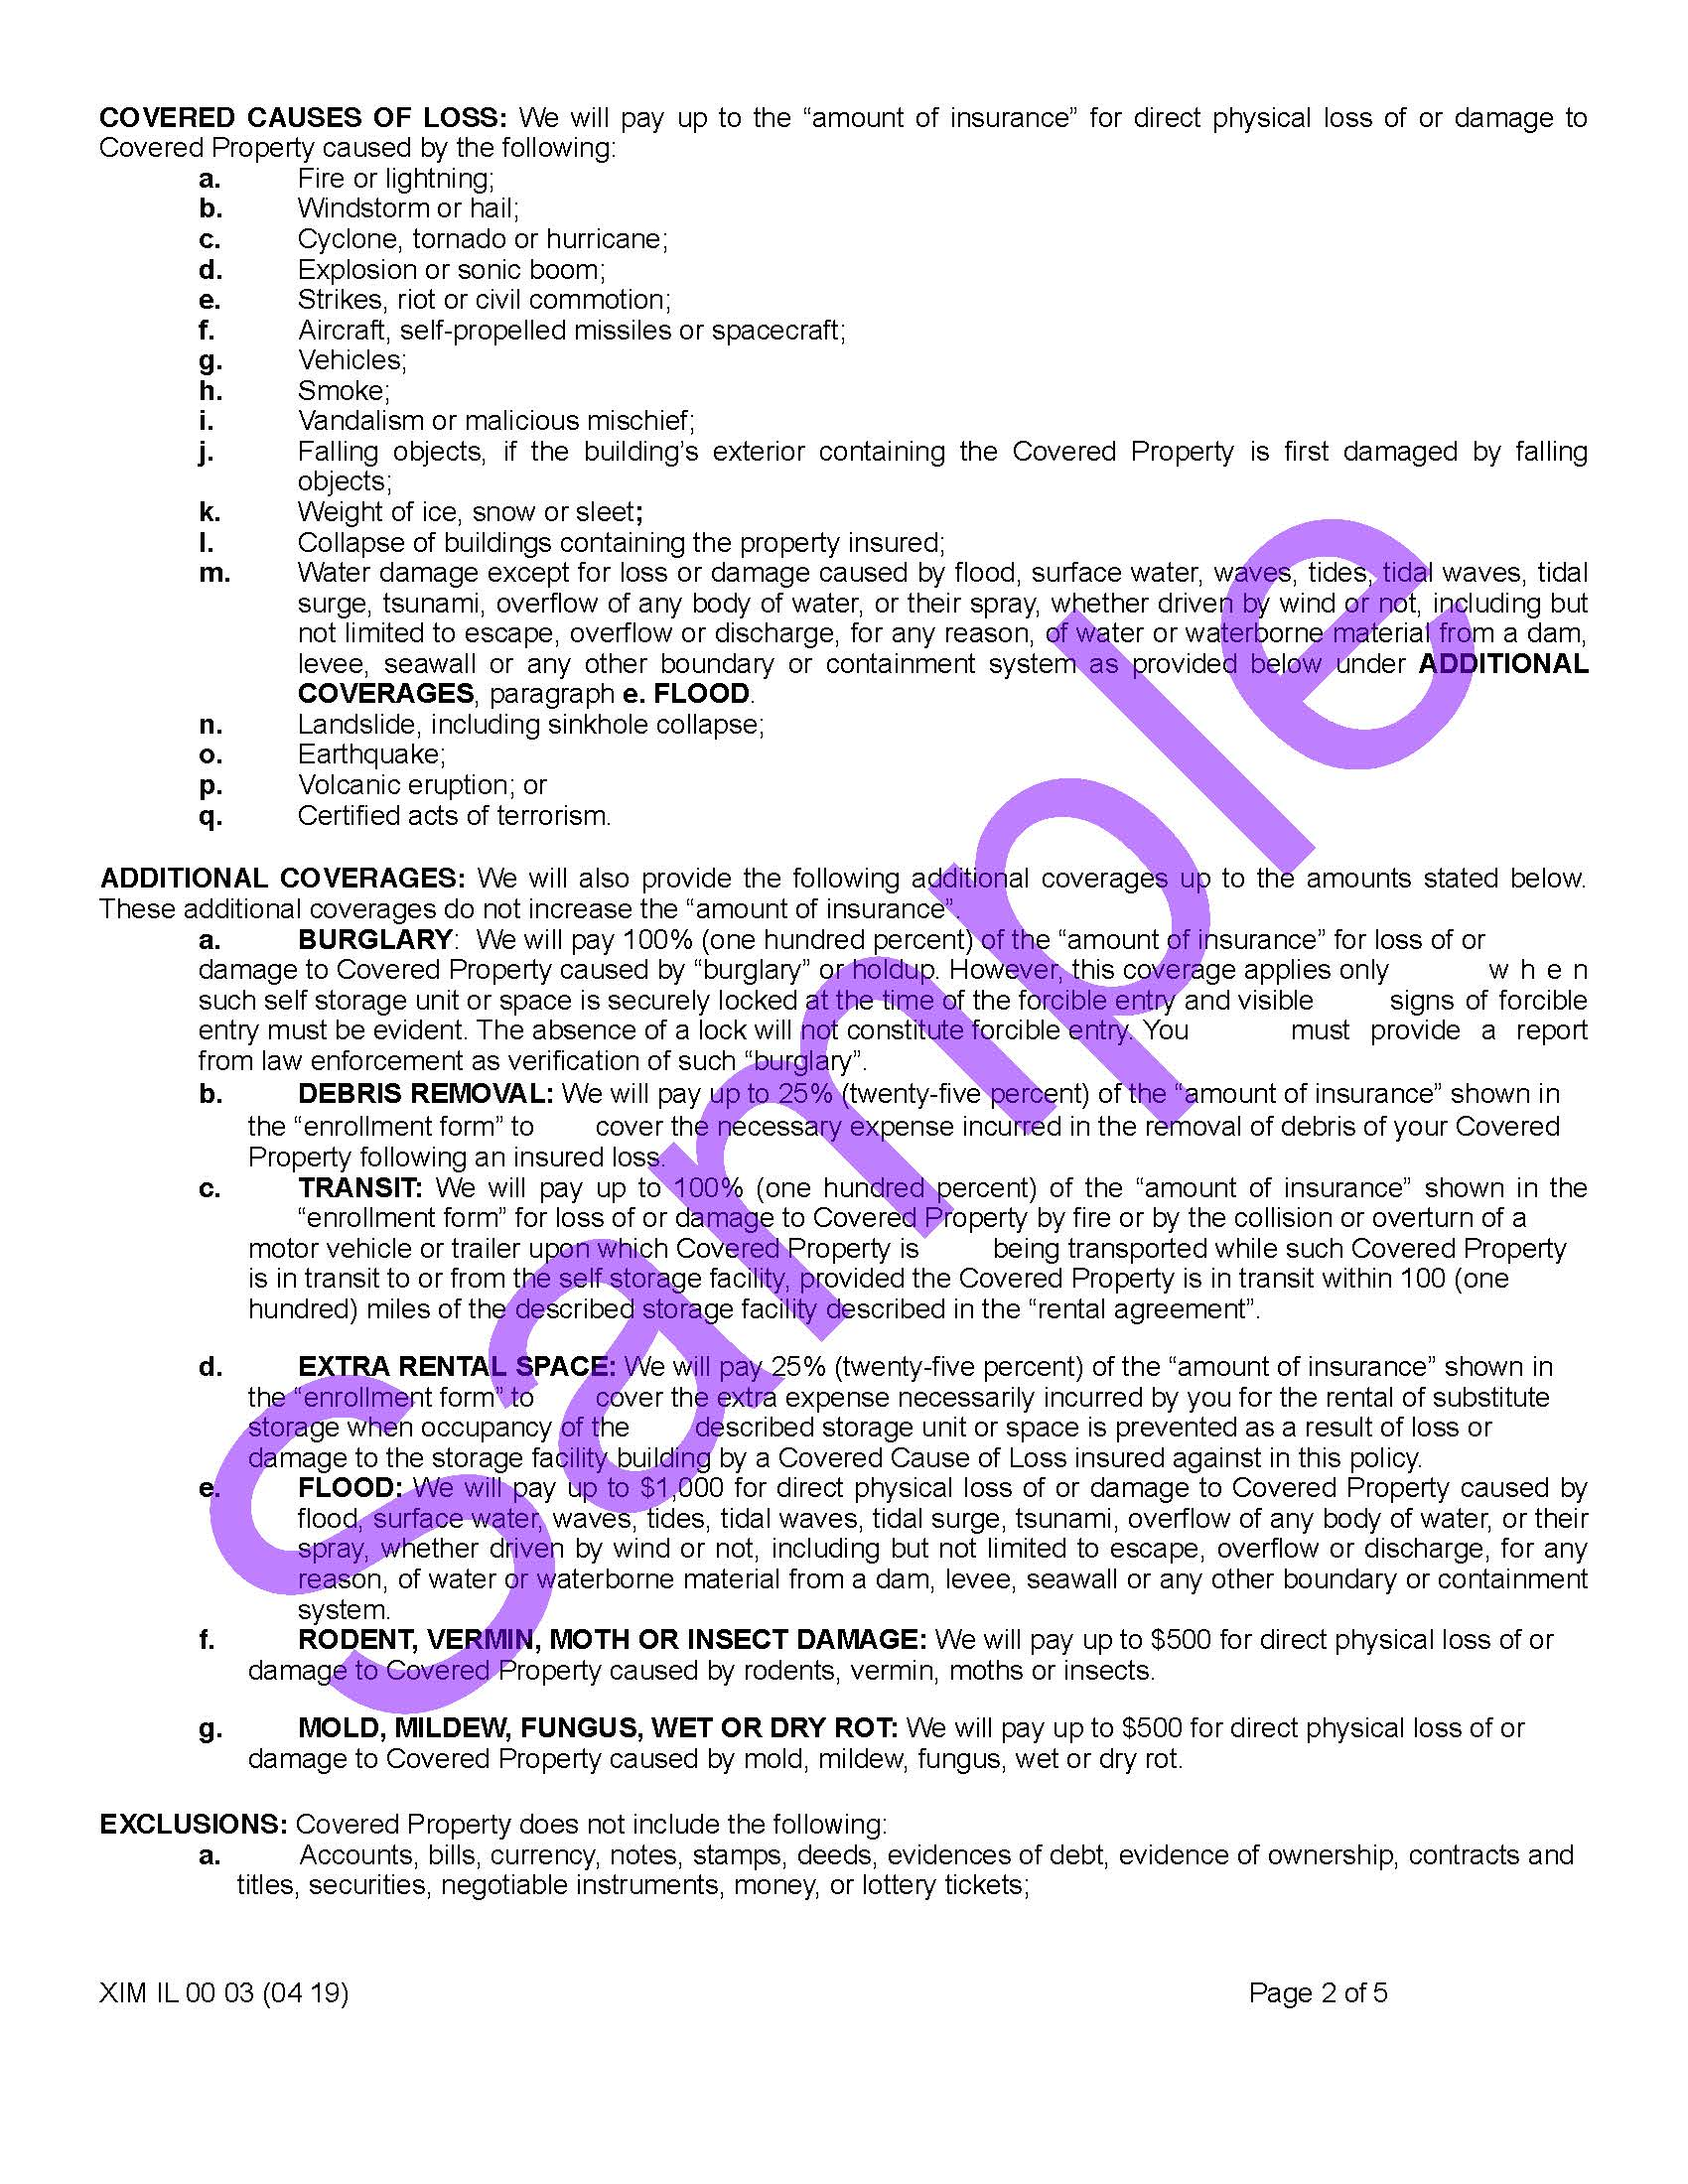 XIM IL 00 03 04 19 Illinois Certificate of InsuranceSample_Page_2.jpg